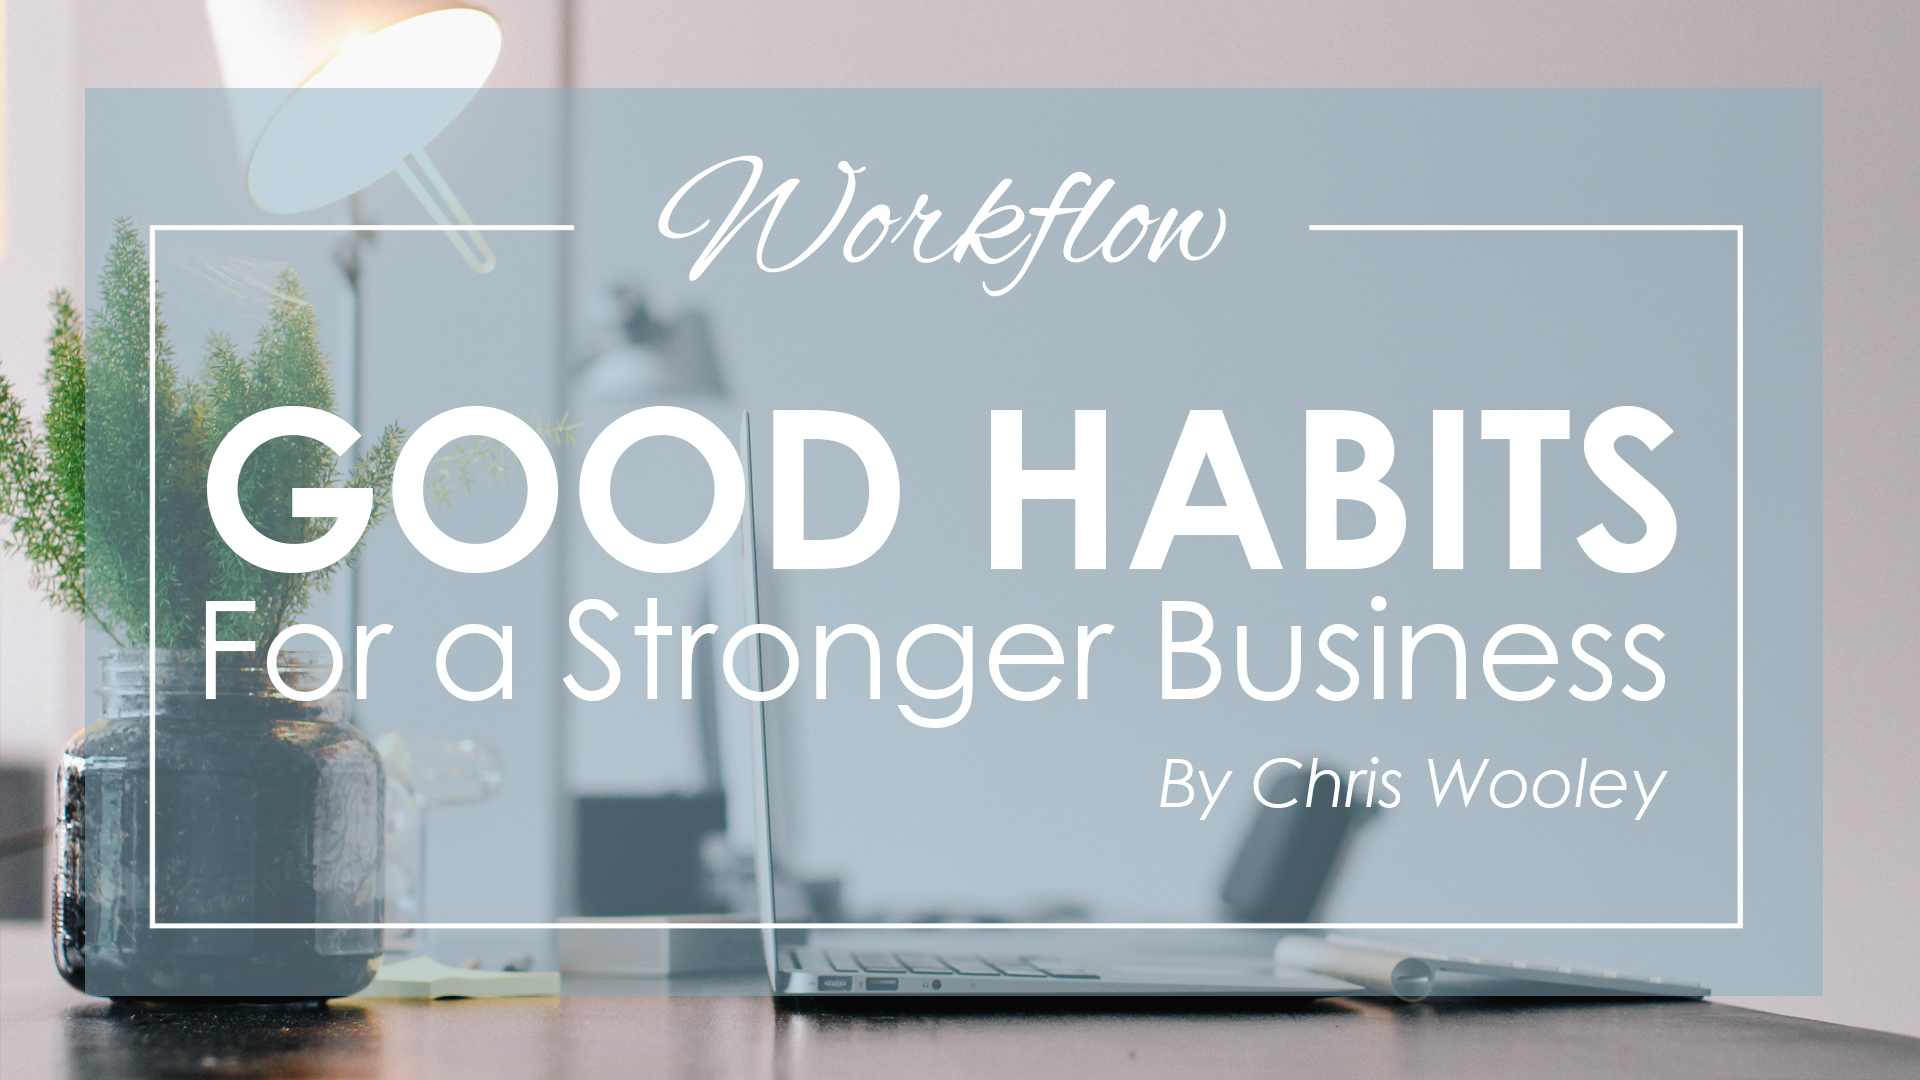 Good Habits for a Stronger Business